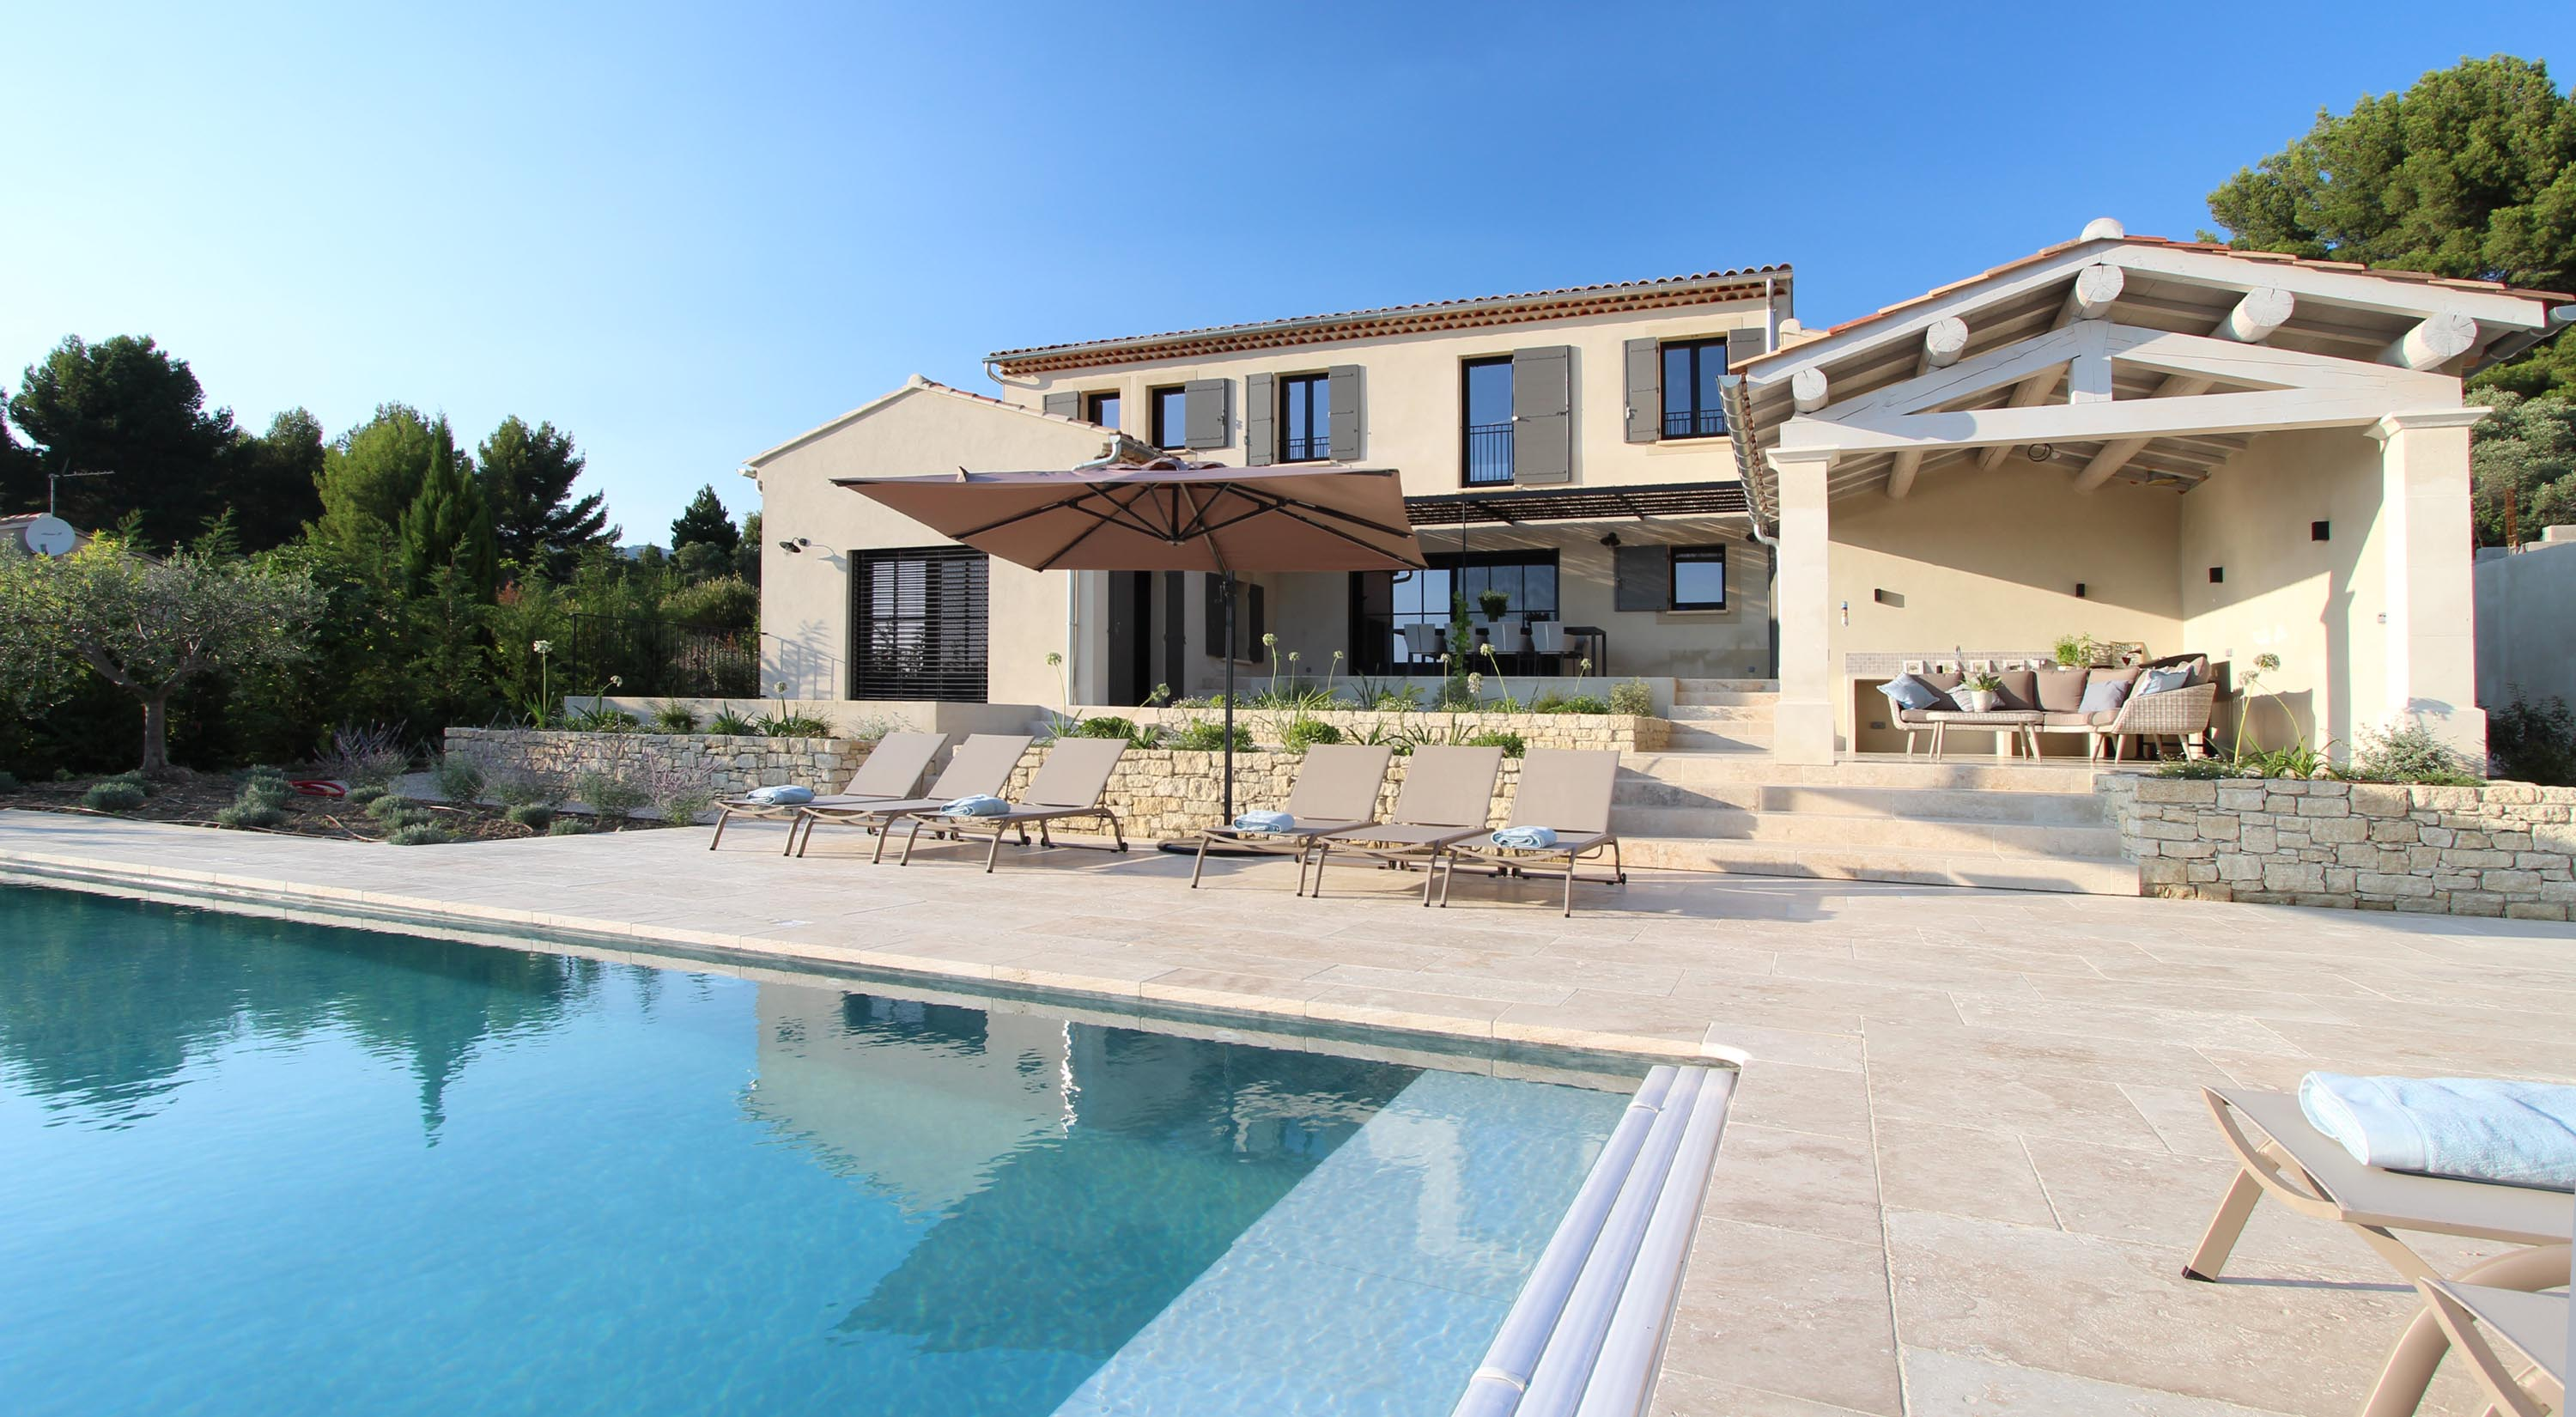 Luxury rental holiday villa in Provence